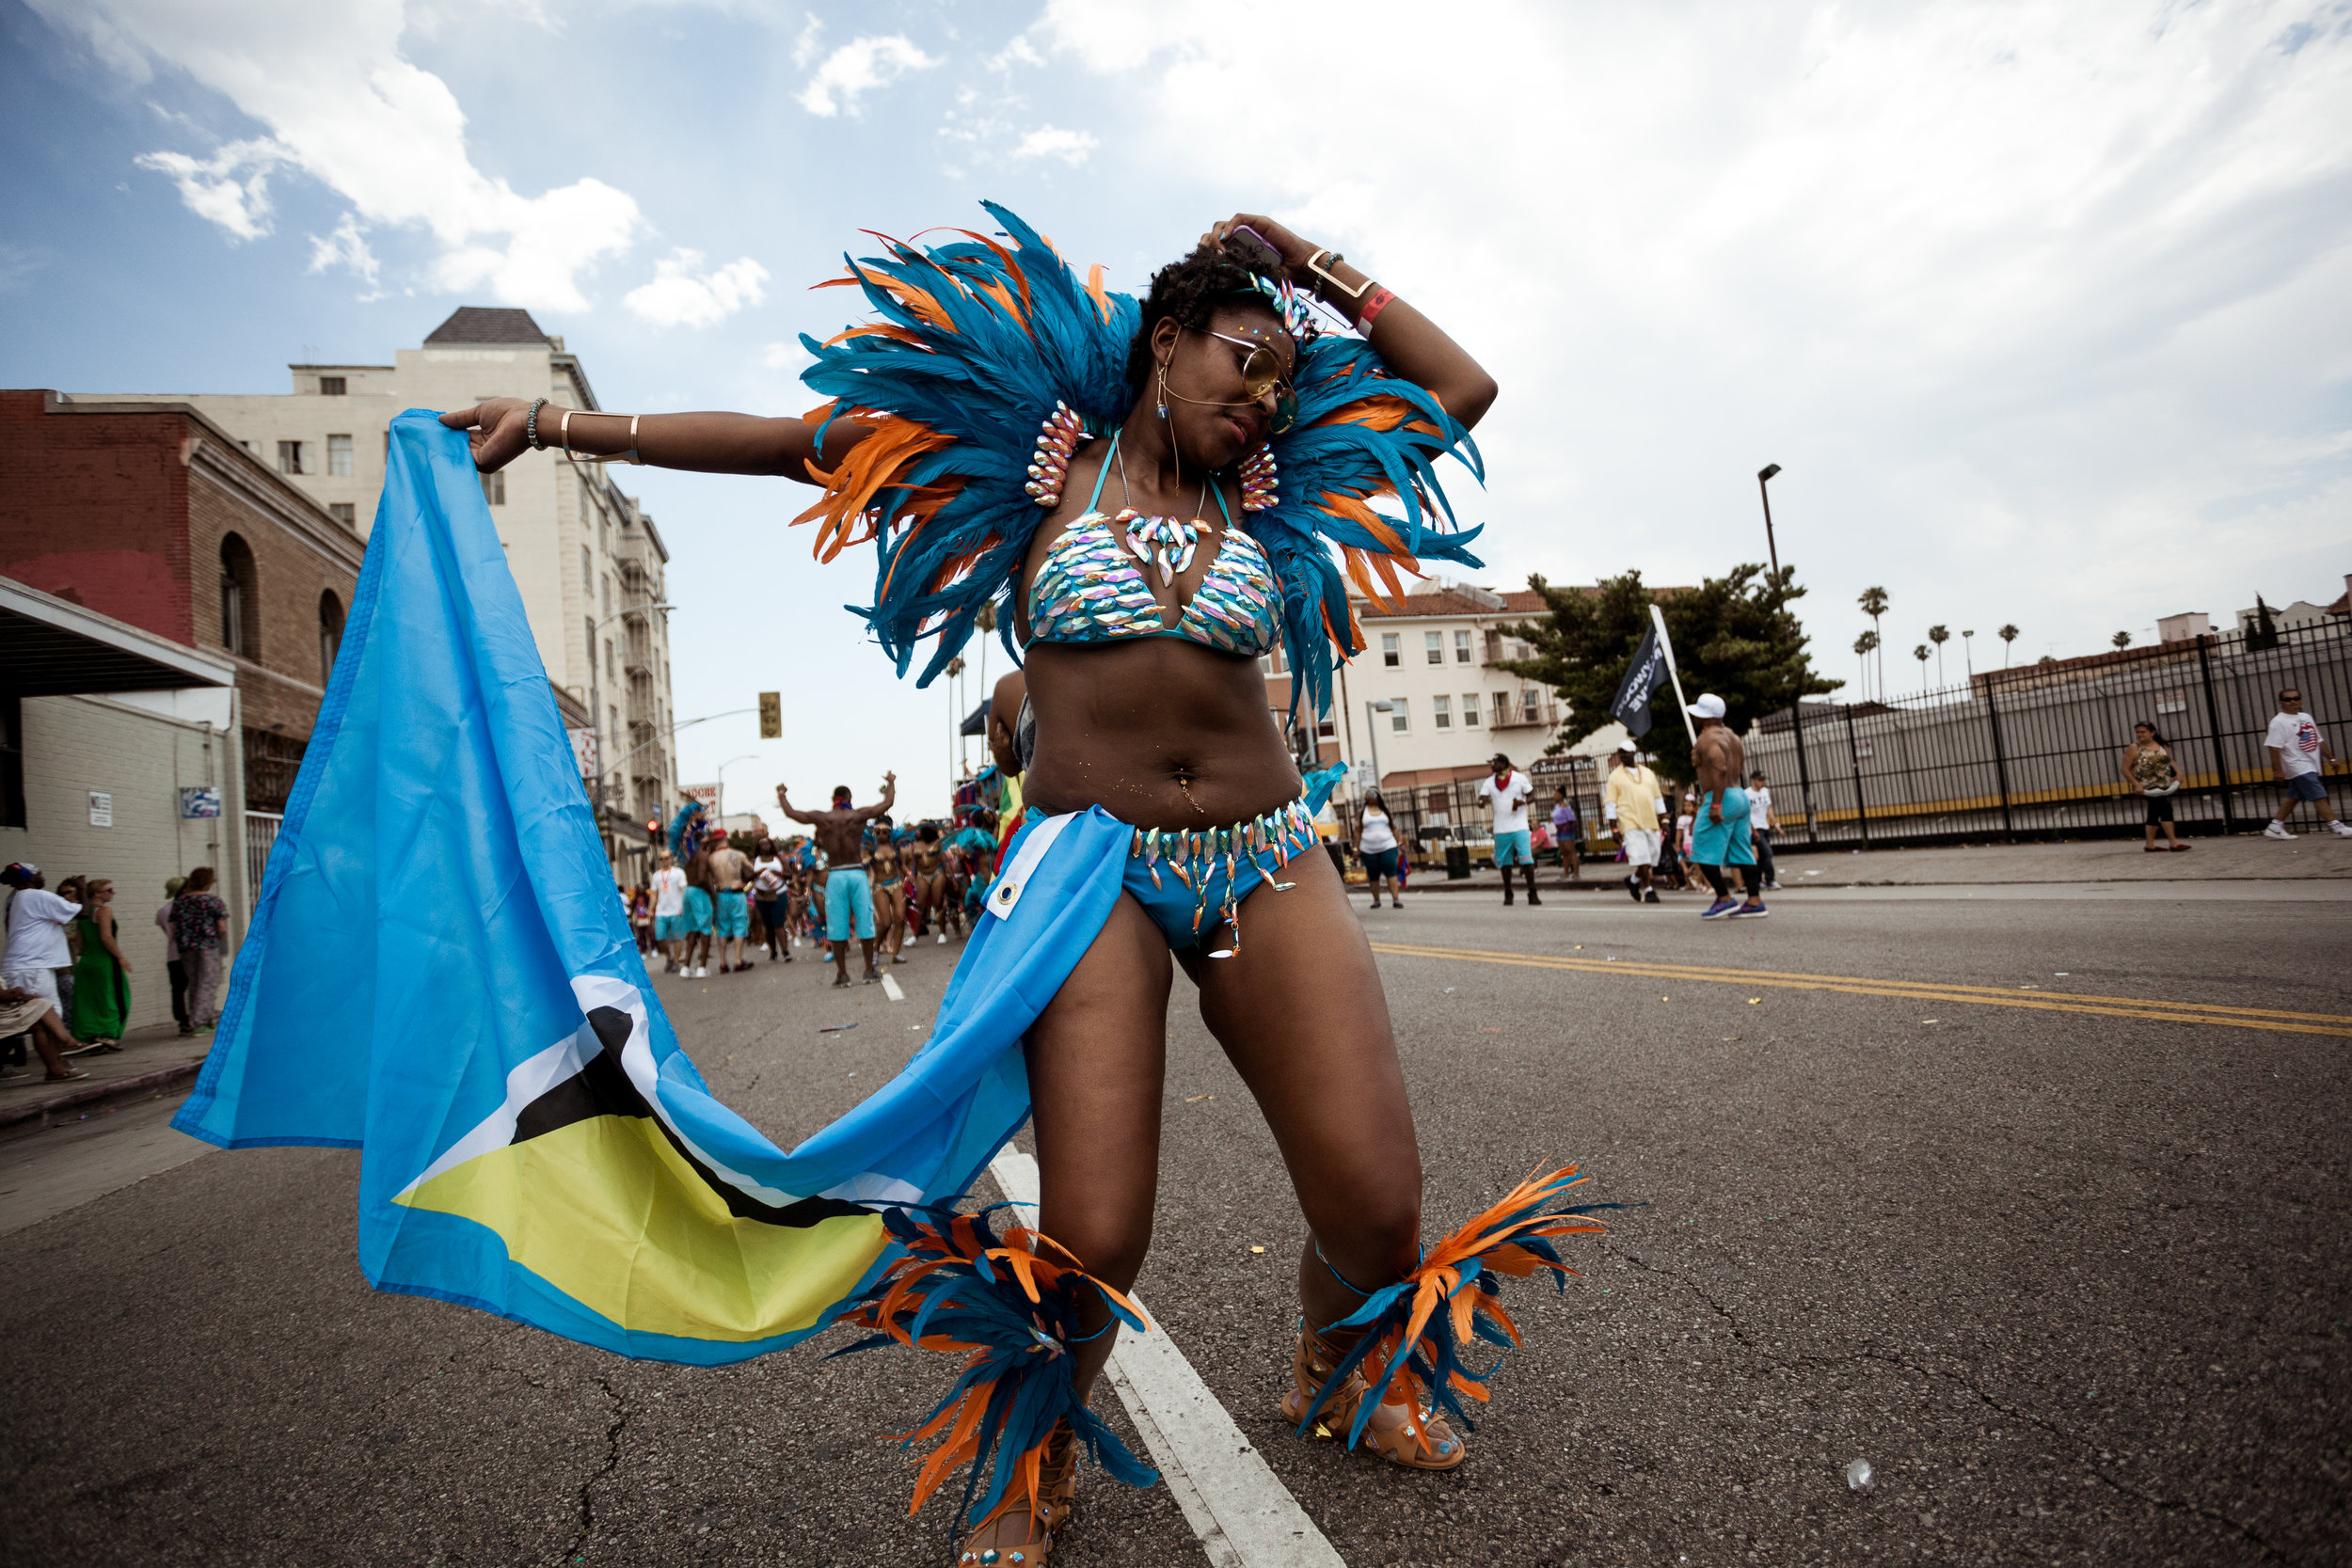 Chacon Images_Carnaval_Print-5712.jpg